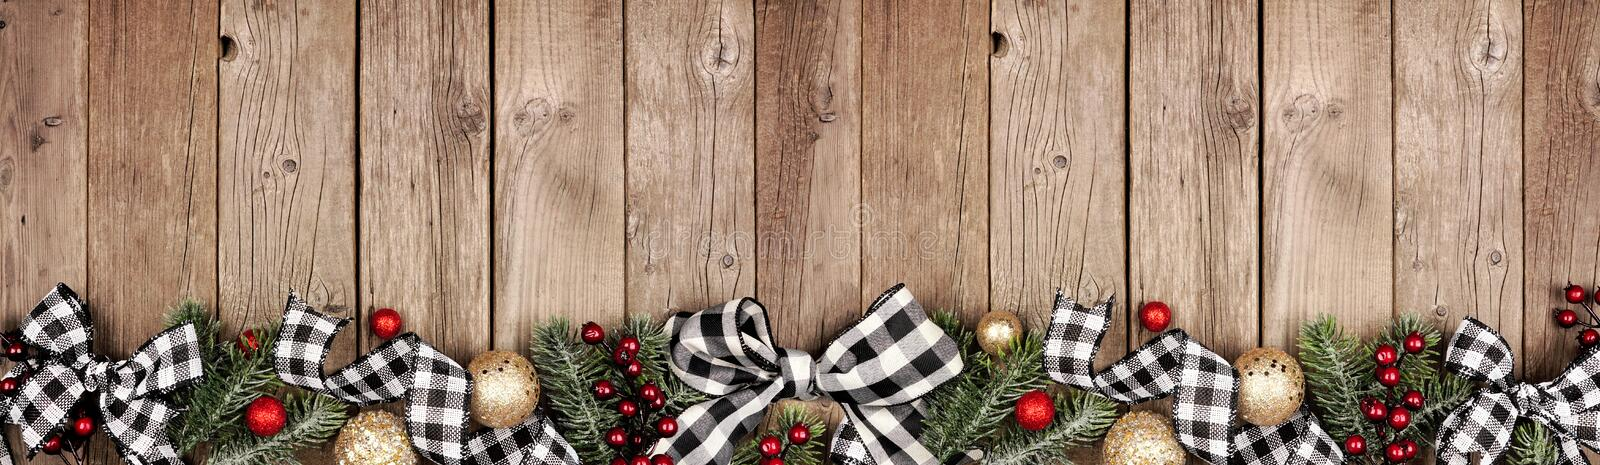 christmas border banner white black checked buffalo plaid ribbon ornaments tree branches above view rustic wood 163888194